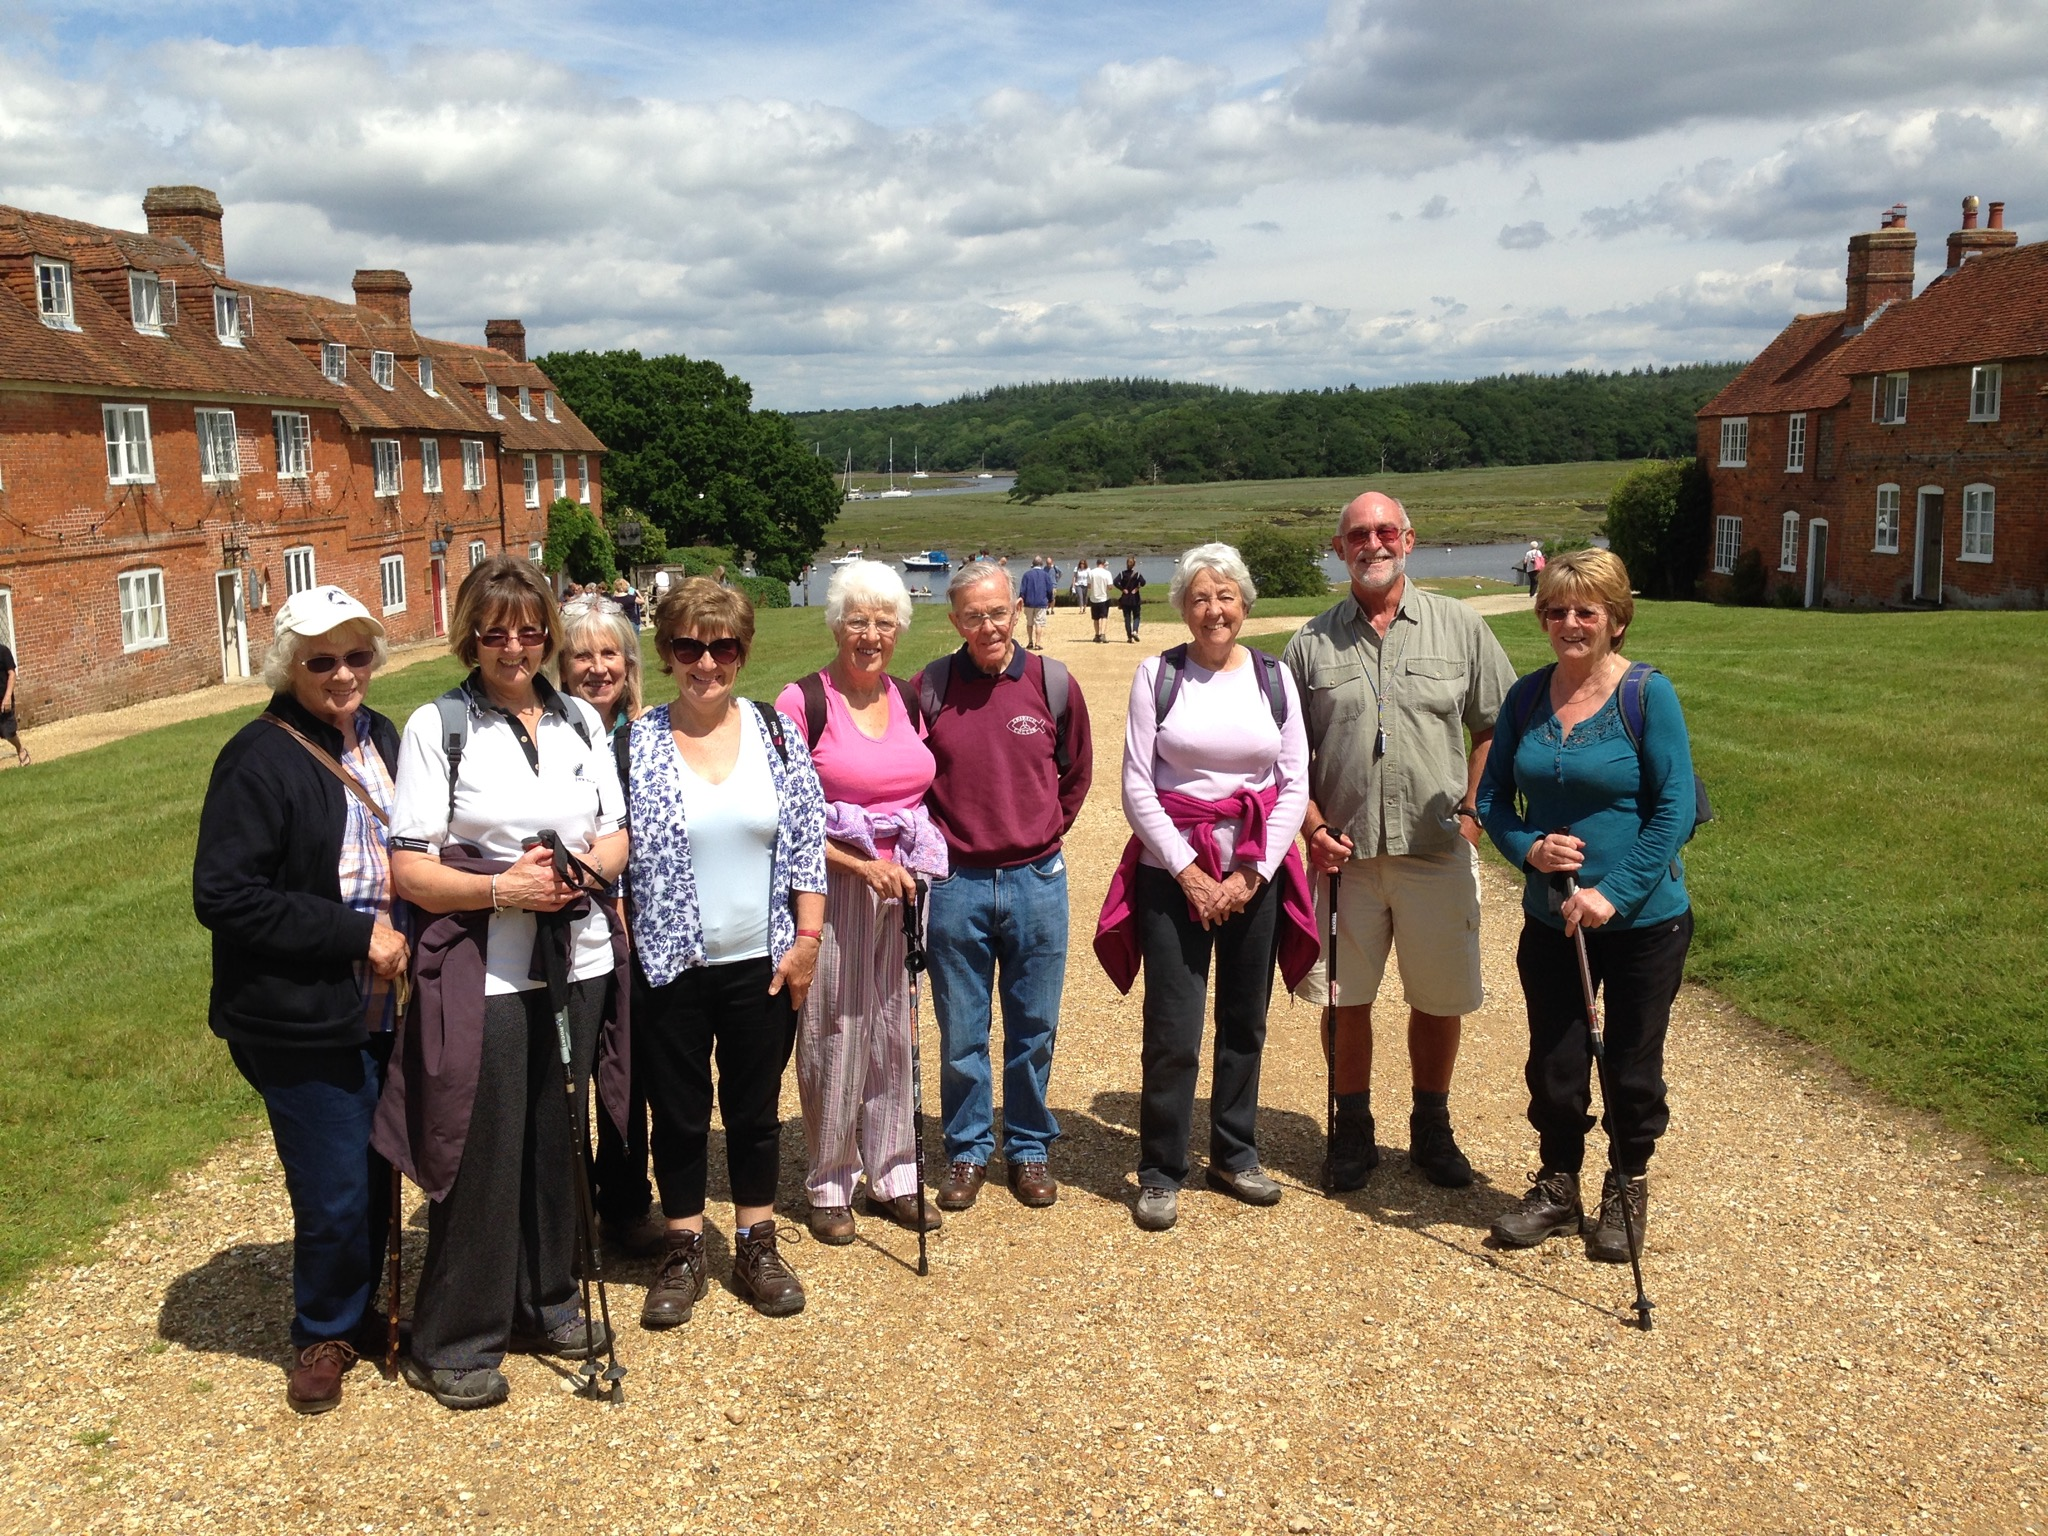 Some of our U3A members at Bucklers Hard